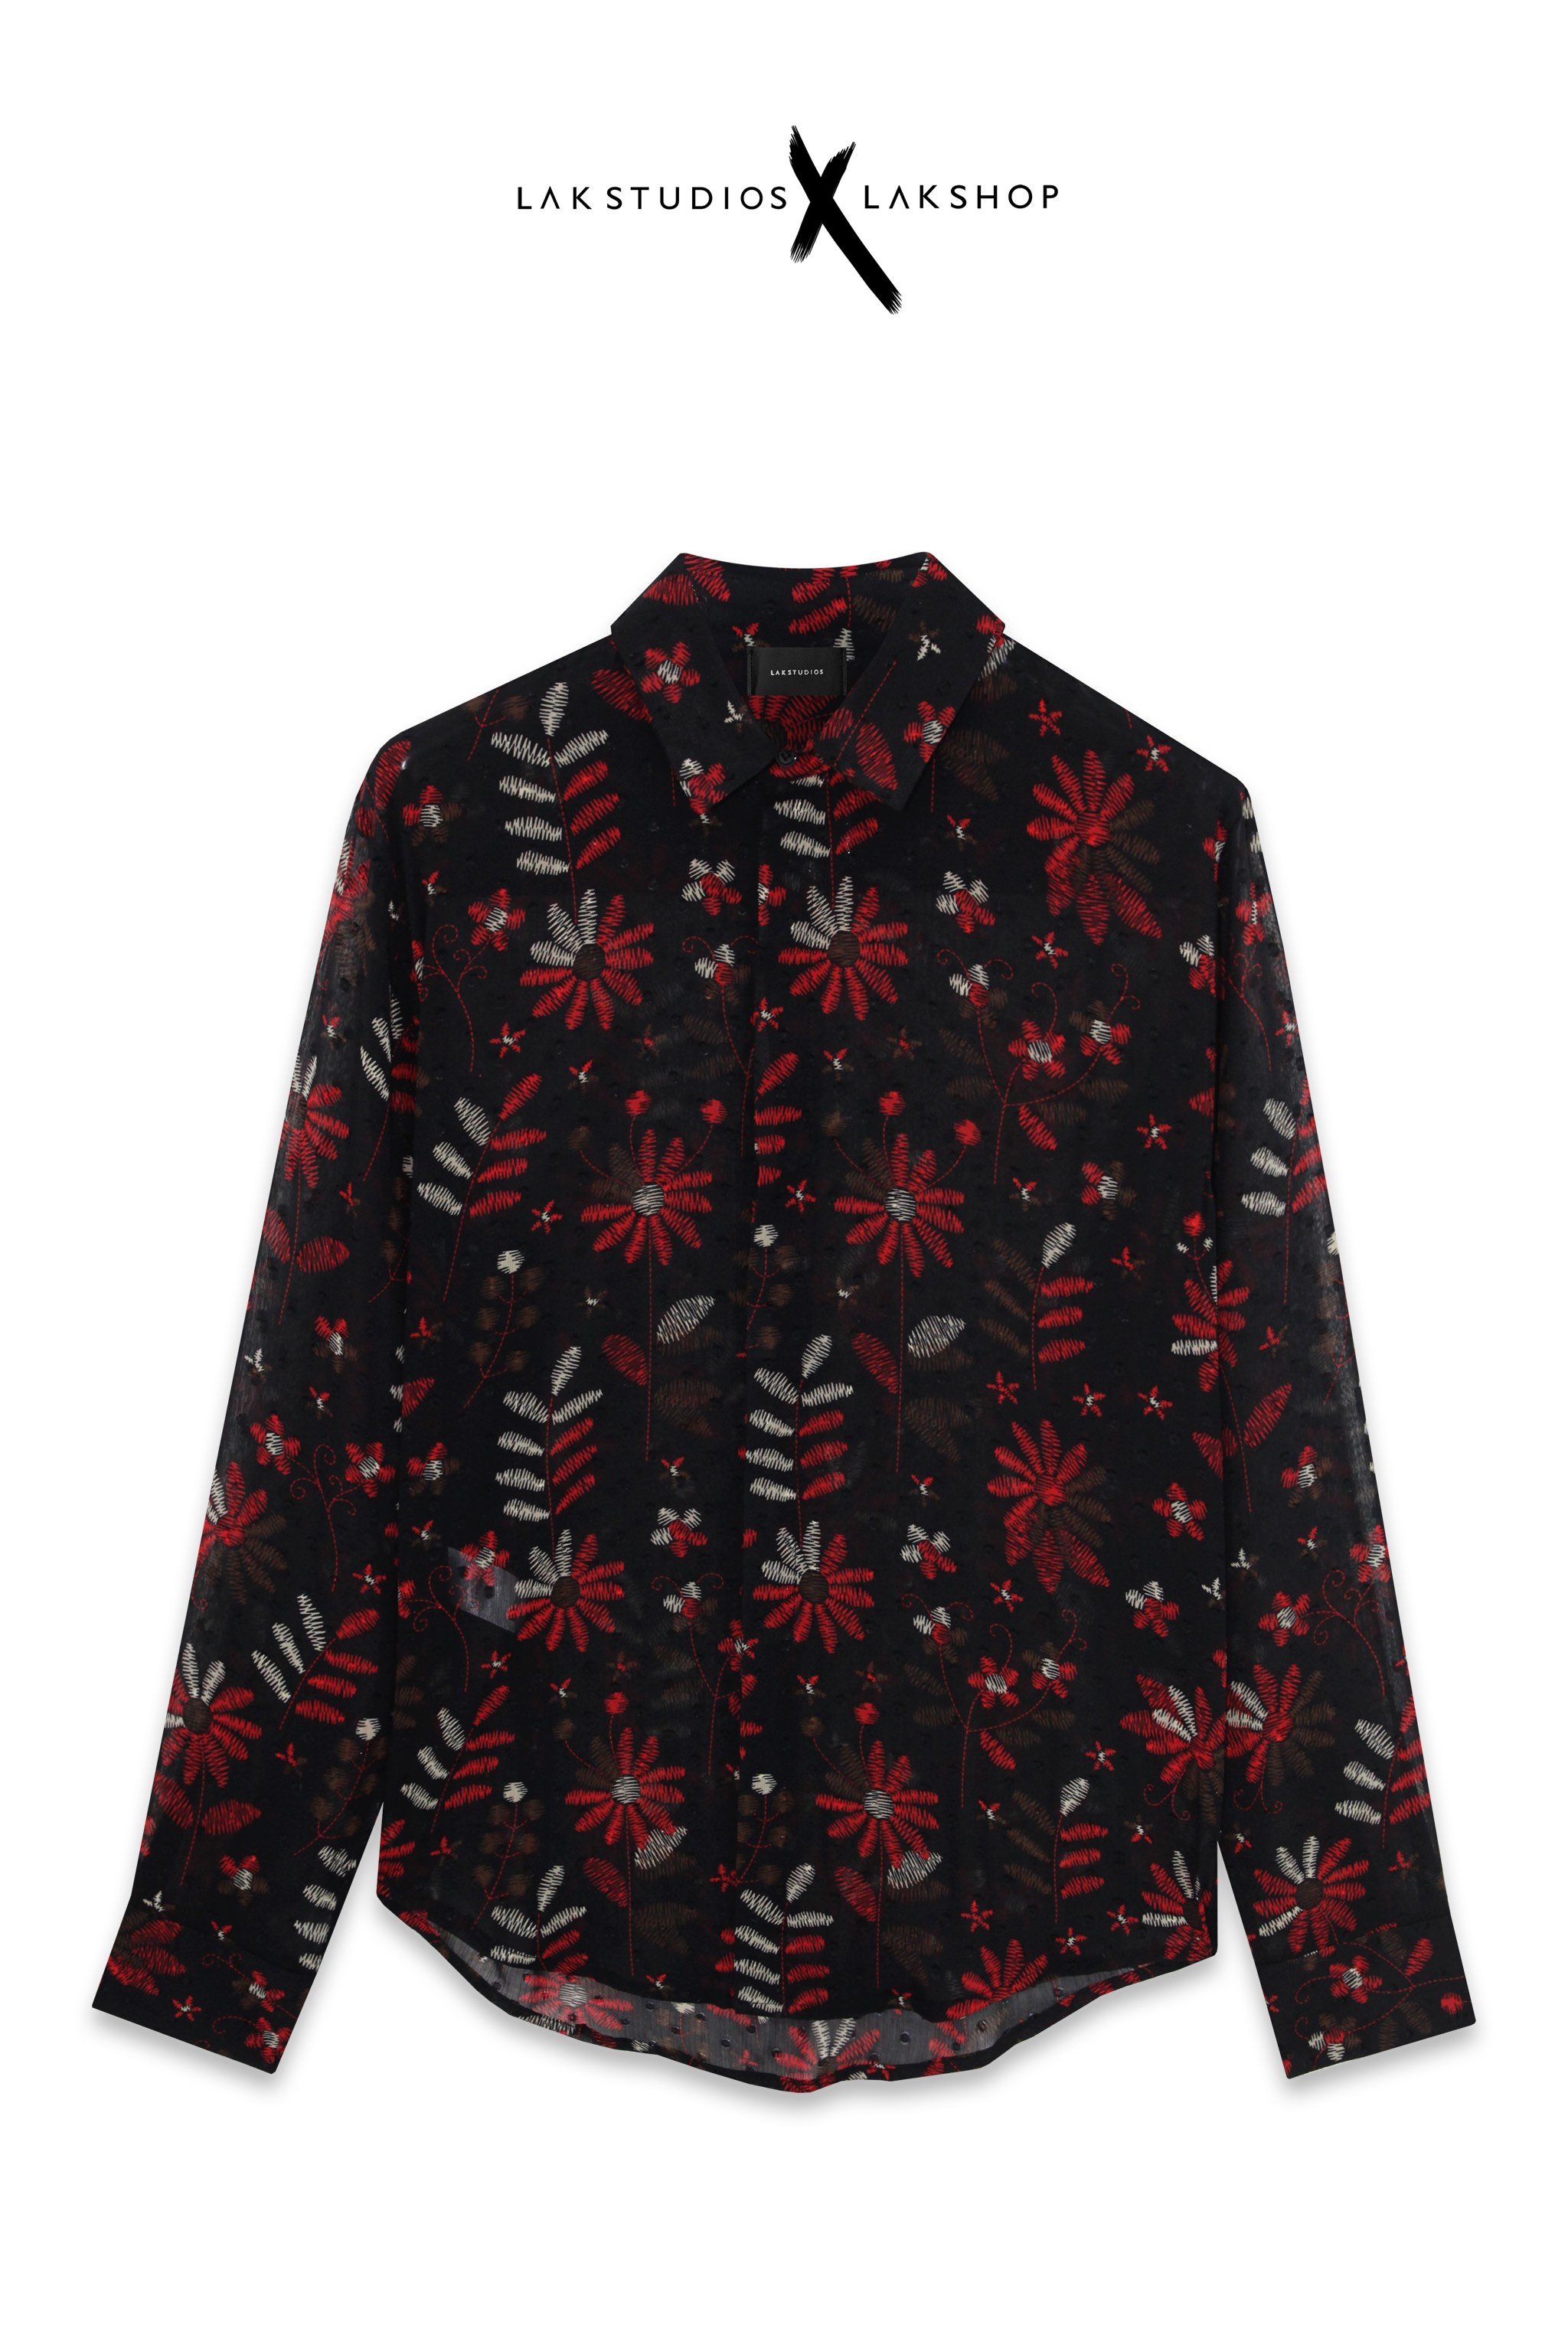 Lak Studios Red Flower Embroidered Shirt